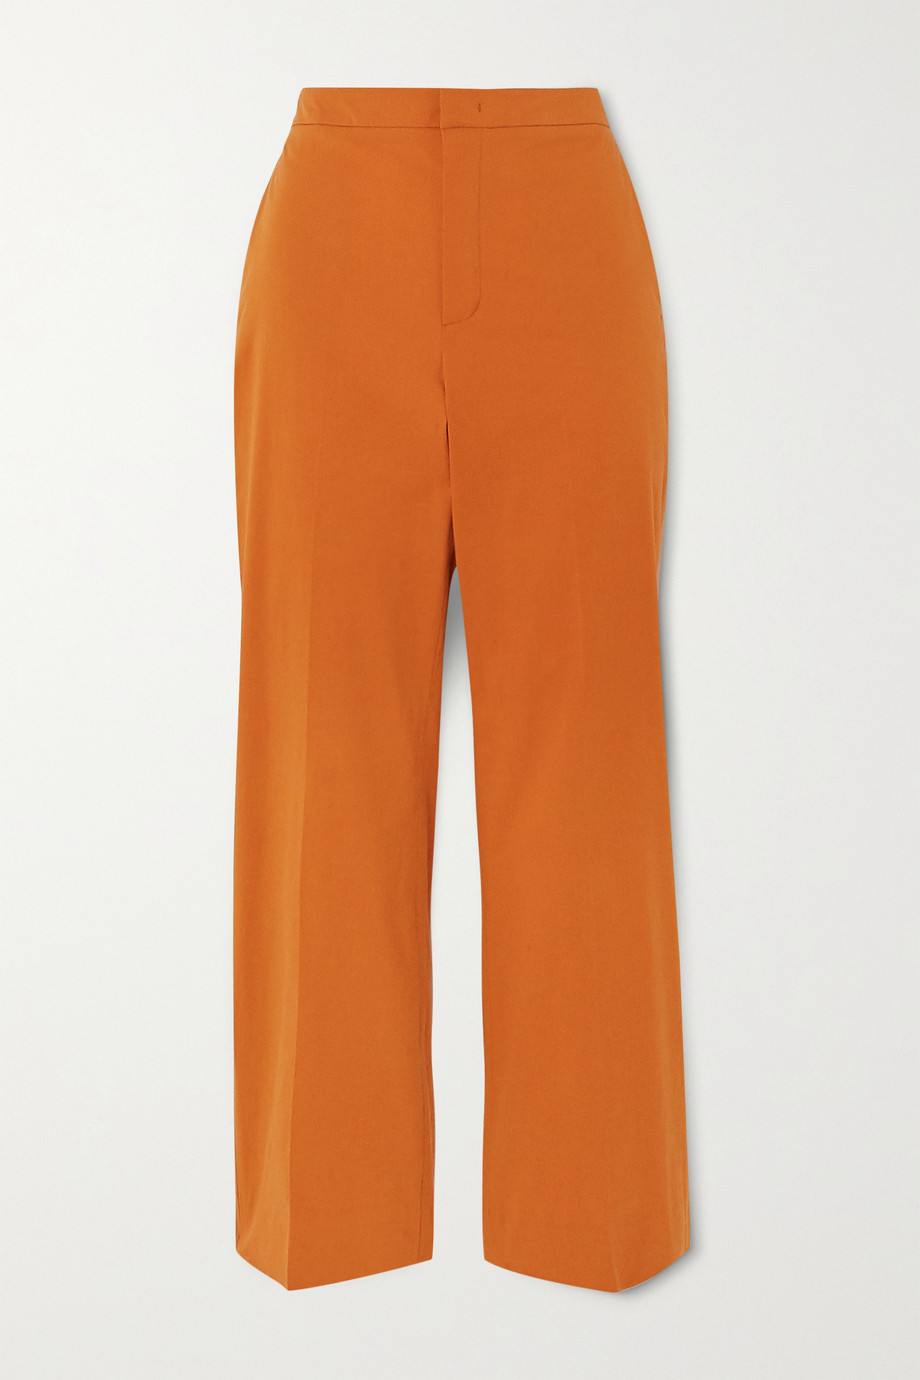 Loro Piana Cotton-blend twill straight leg pants